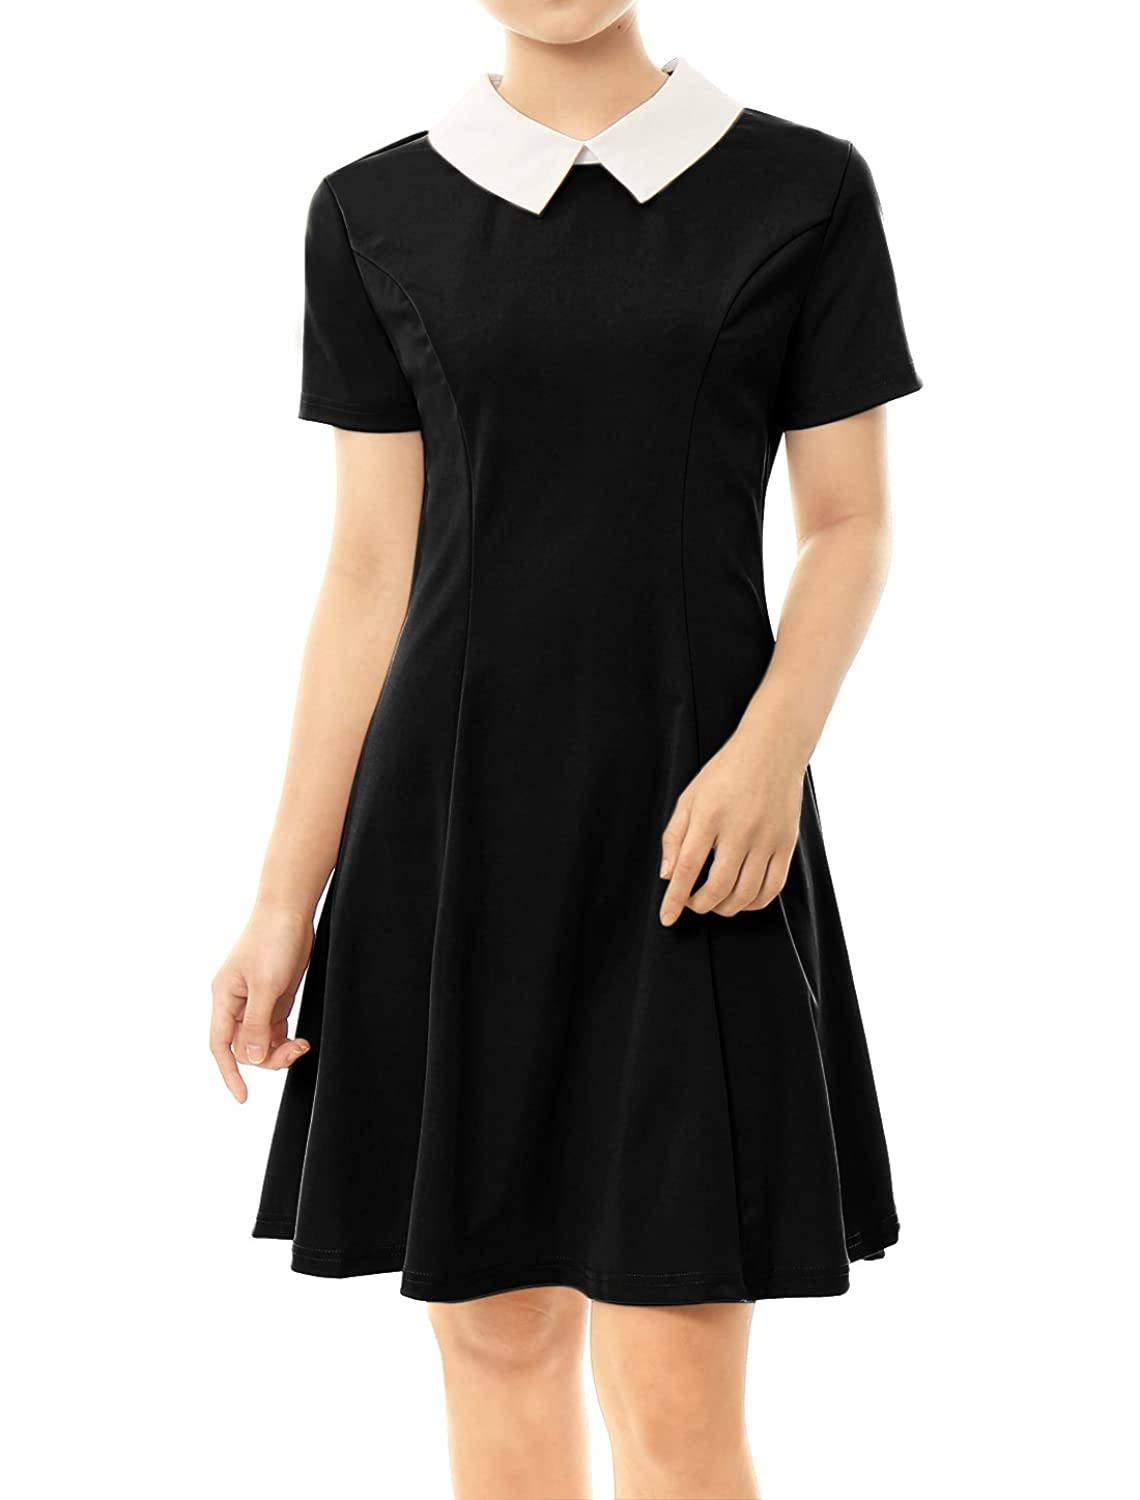 Black dress with white peter pan collar - Amazon Com Allegra K Women S Contrast Doll Collar Short Sleeves Above Knee Flare Dress Clothing